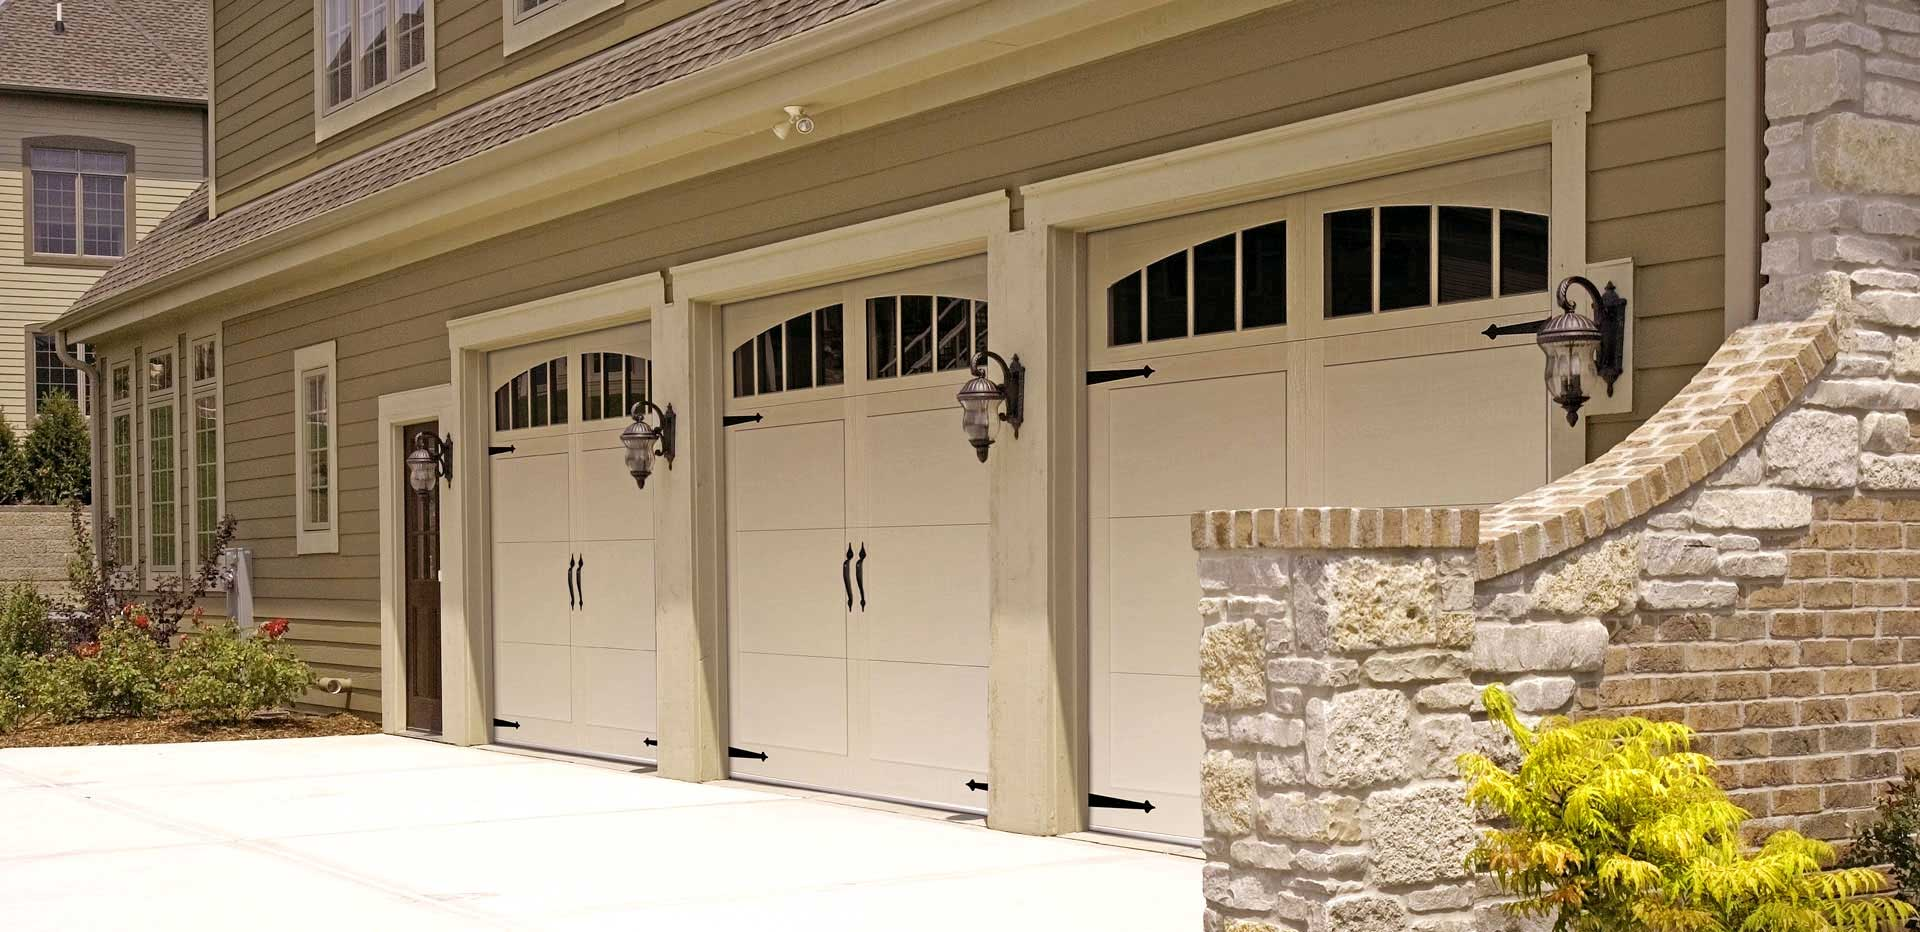 Garage door installation a1 garage doors sedona az garage door installation sedona az solutioingenieria